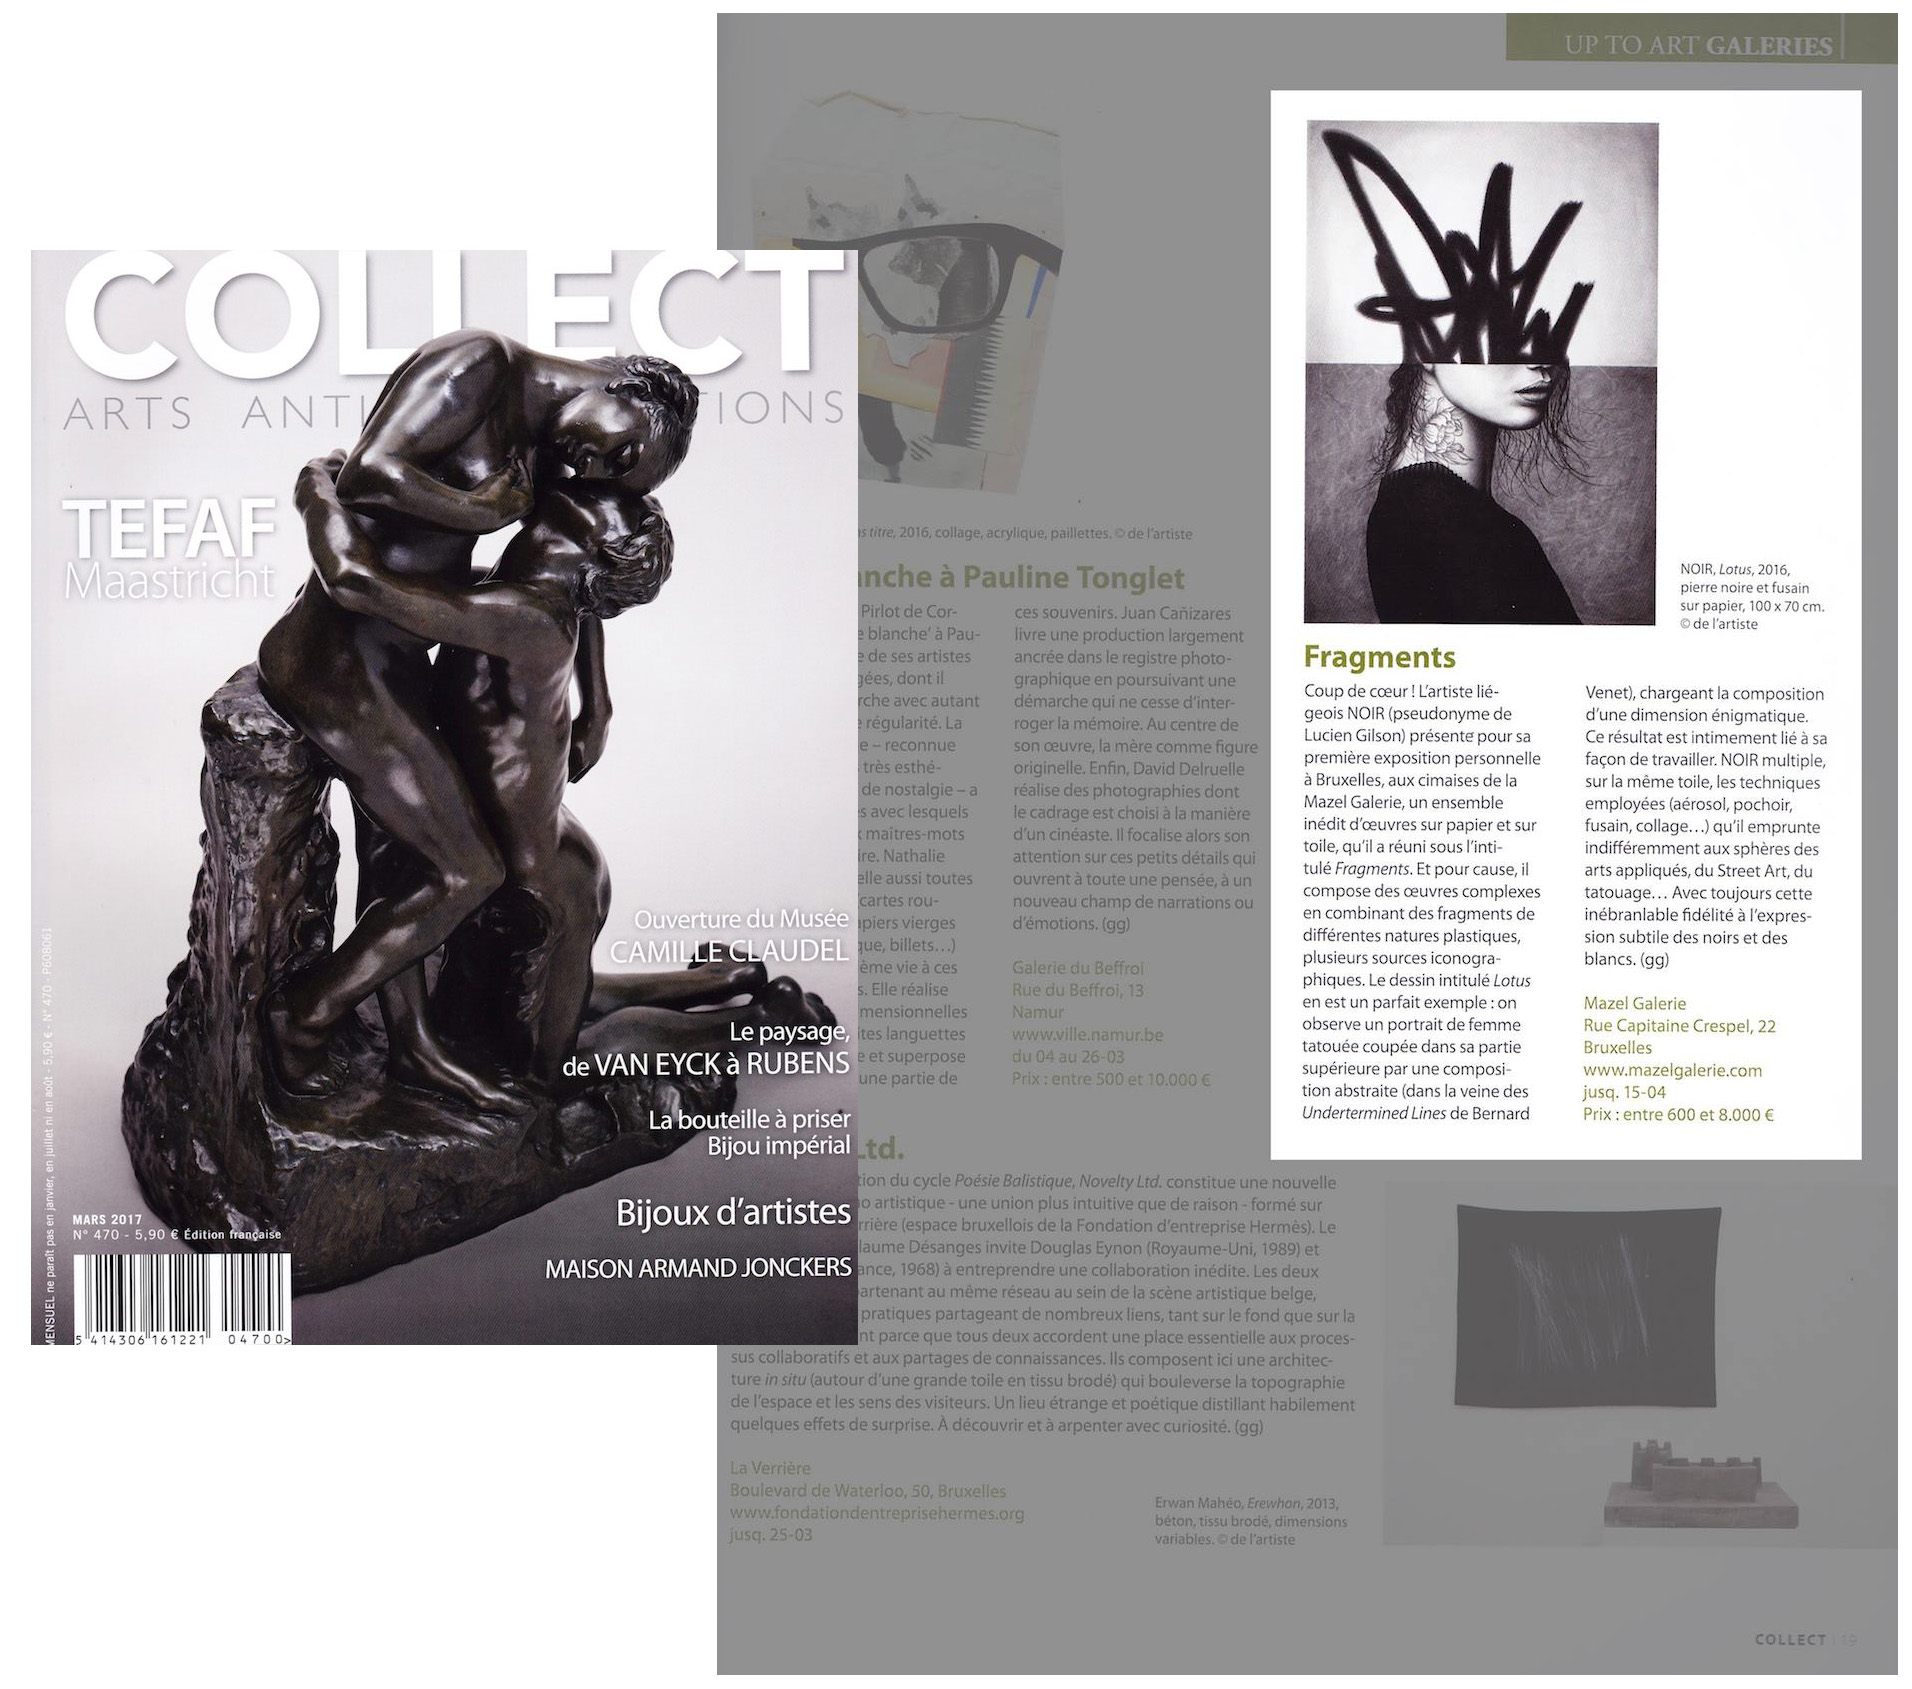 collect  magazine - NOIR artist